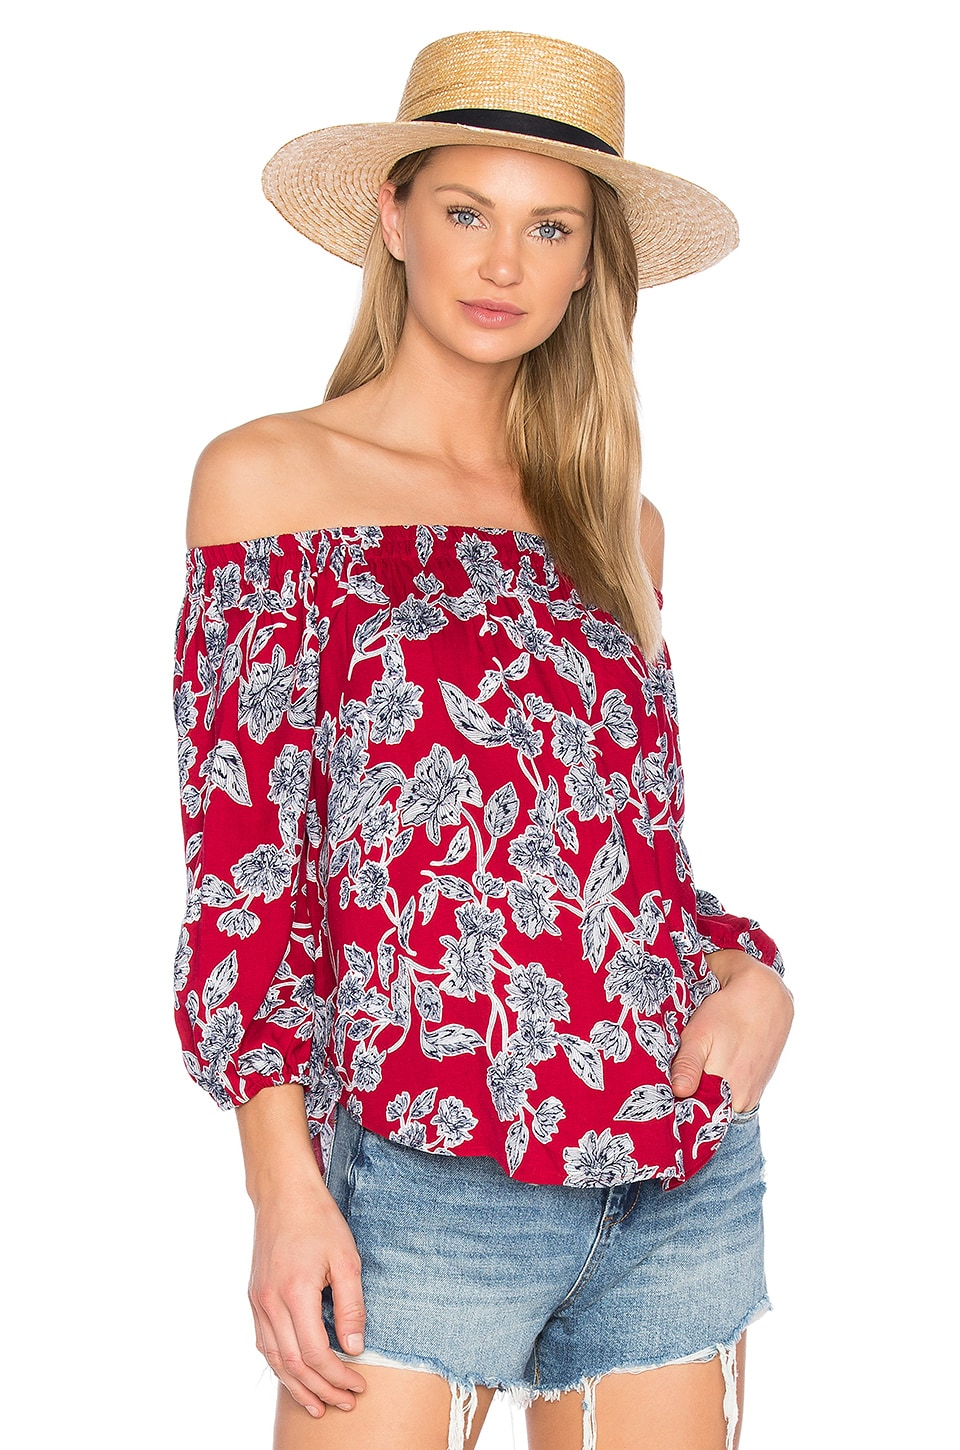 Etched Floral Blouse by Splendid